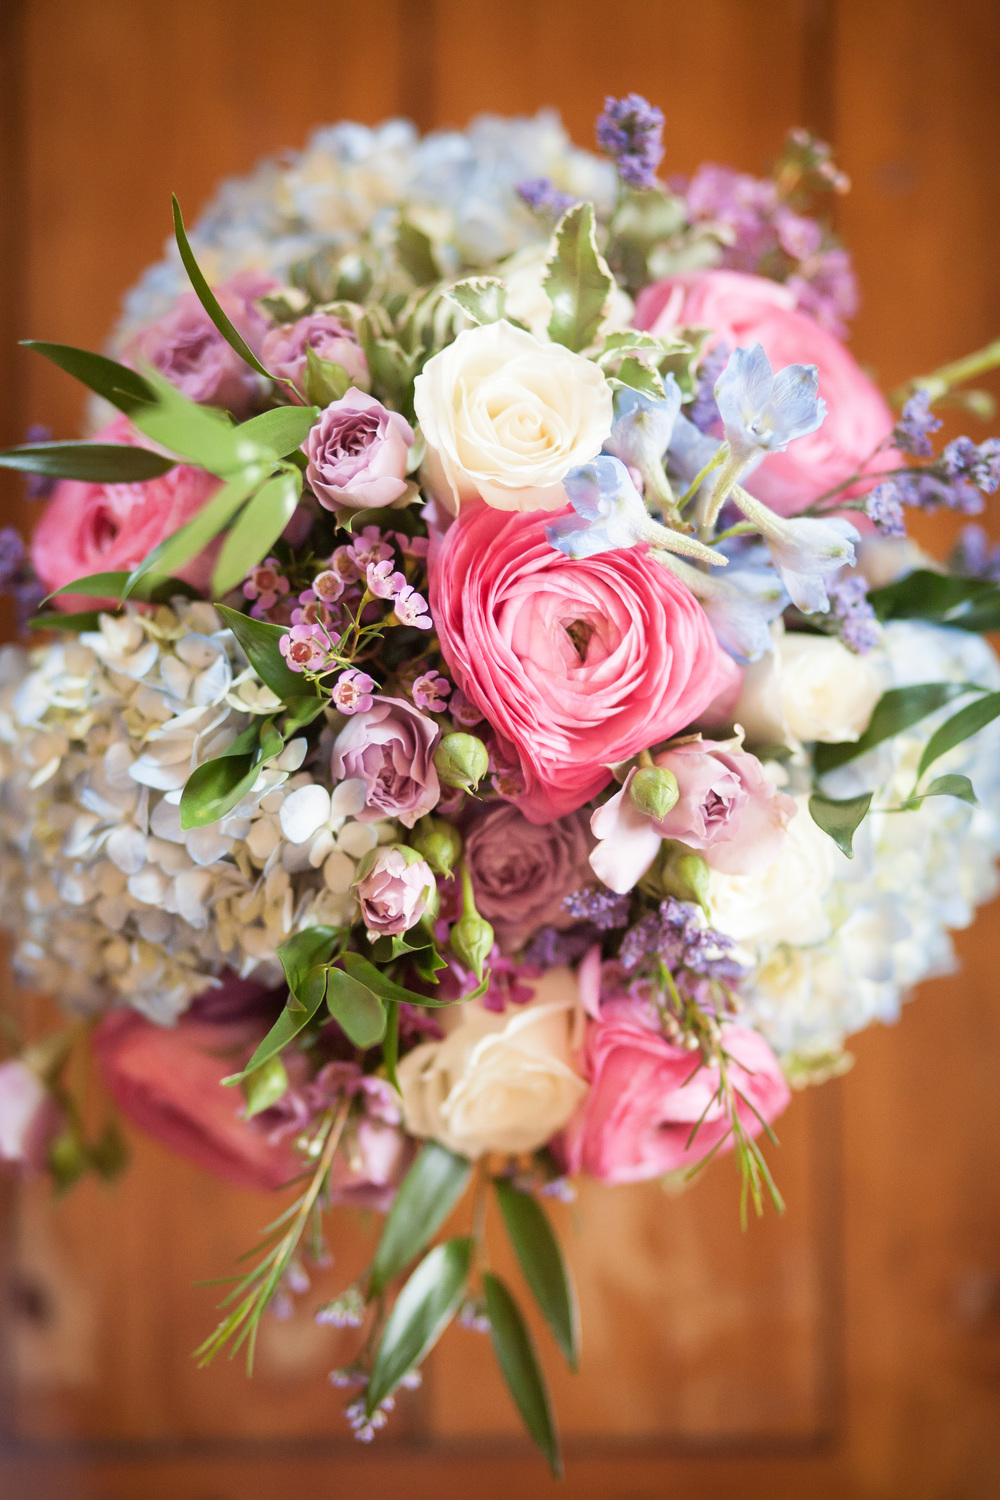 Wedding bouquet for the bride at L'auberge Provencale near Winchester, Virginia